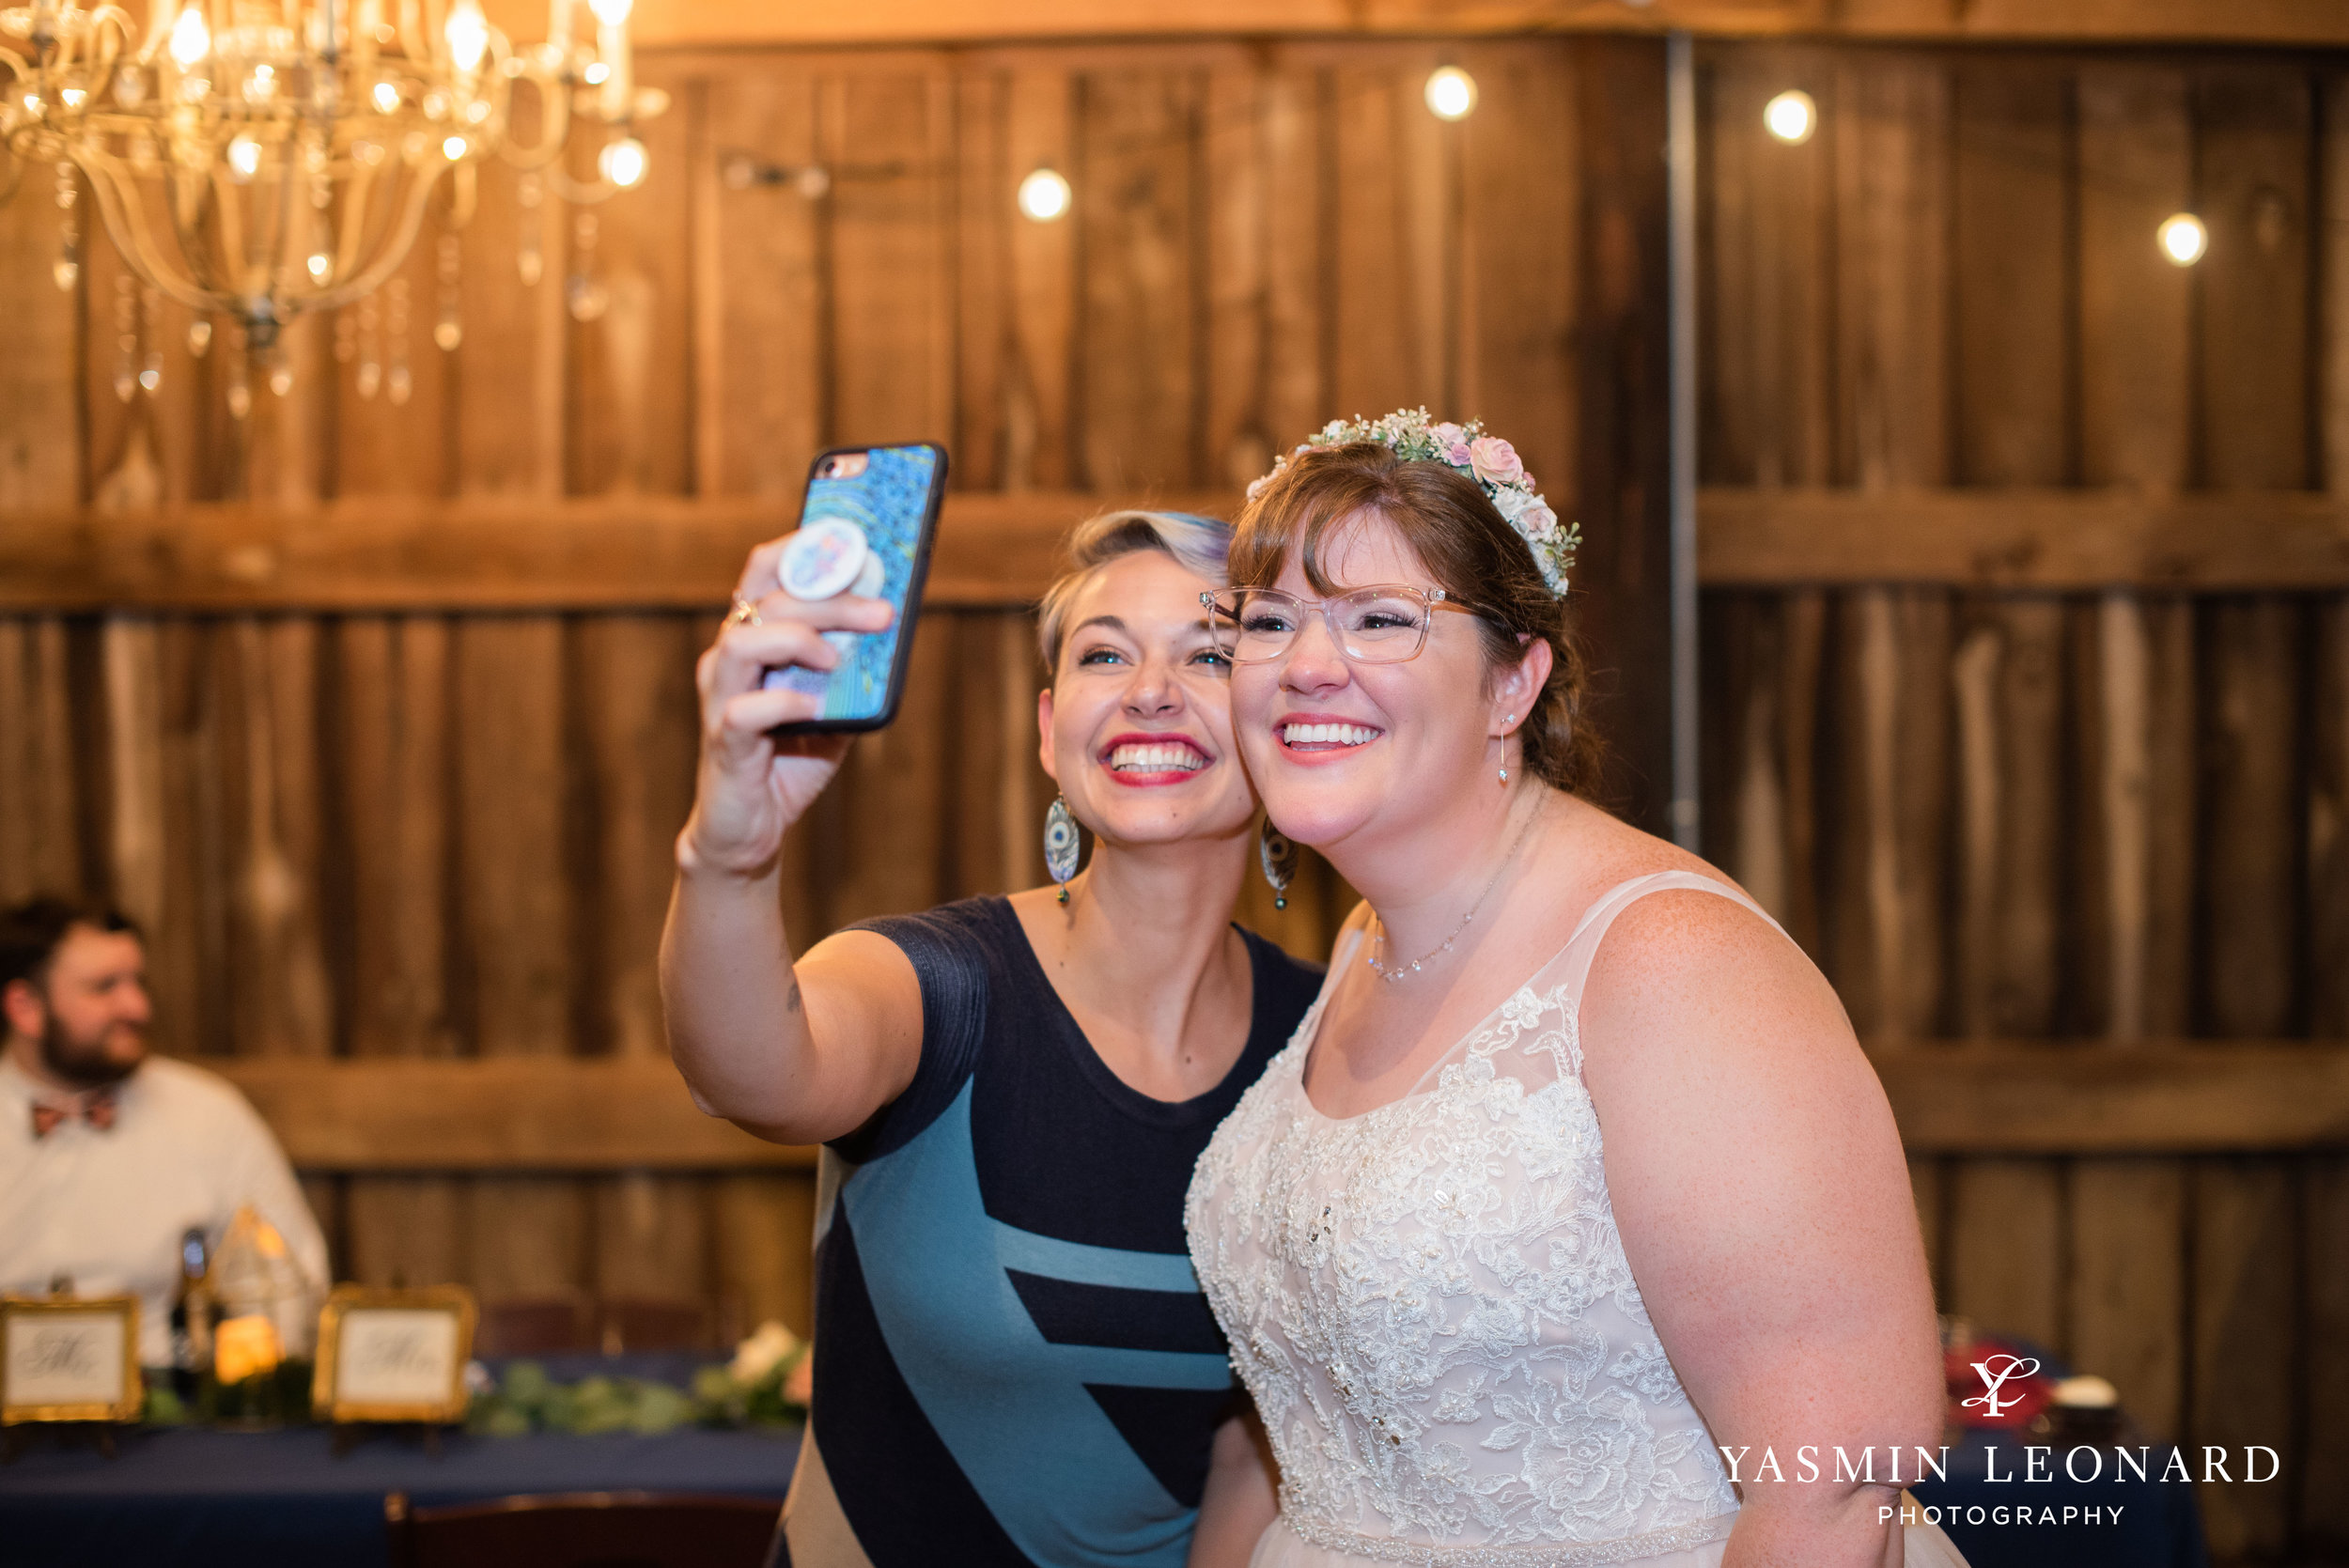 Hannah and David - l'abri at Linwood - NC Barn Weddings - Guys and Girls on Bride's Side - How to incorporate guys with bridesmaids - navy fall wedding - high point photographer - nc wedding venues - triad weddings-48.jpg